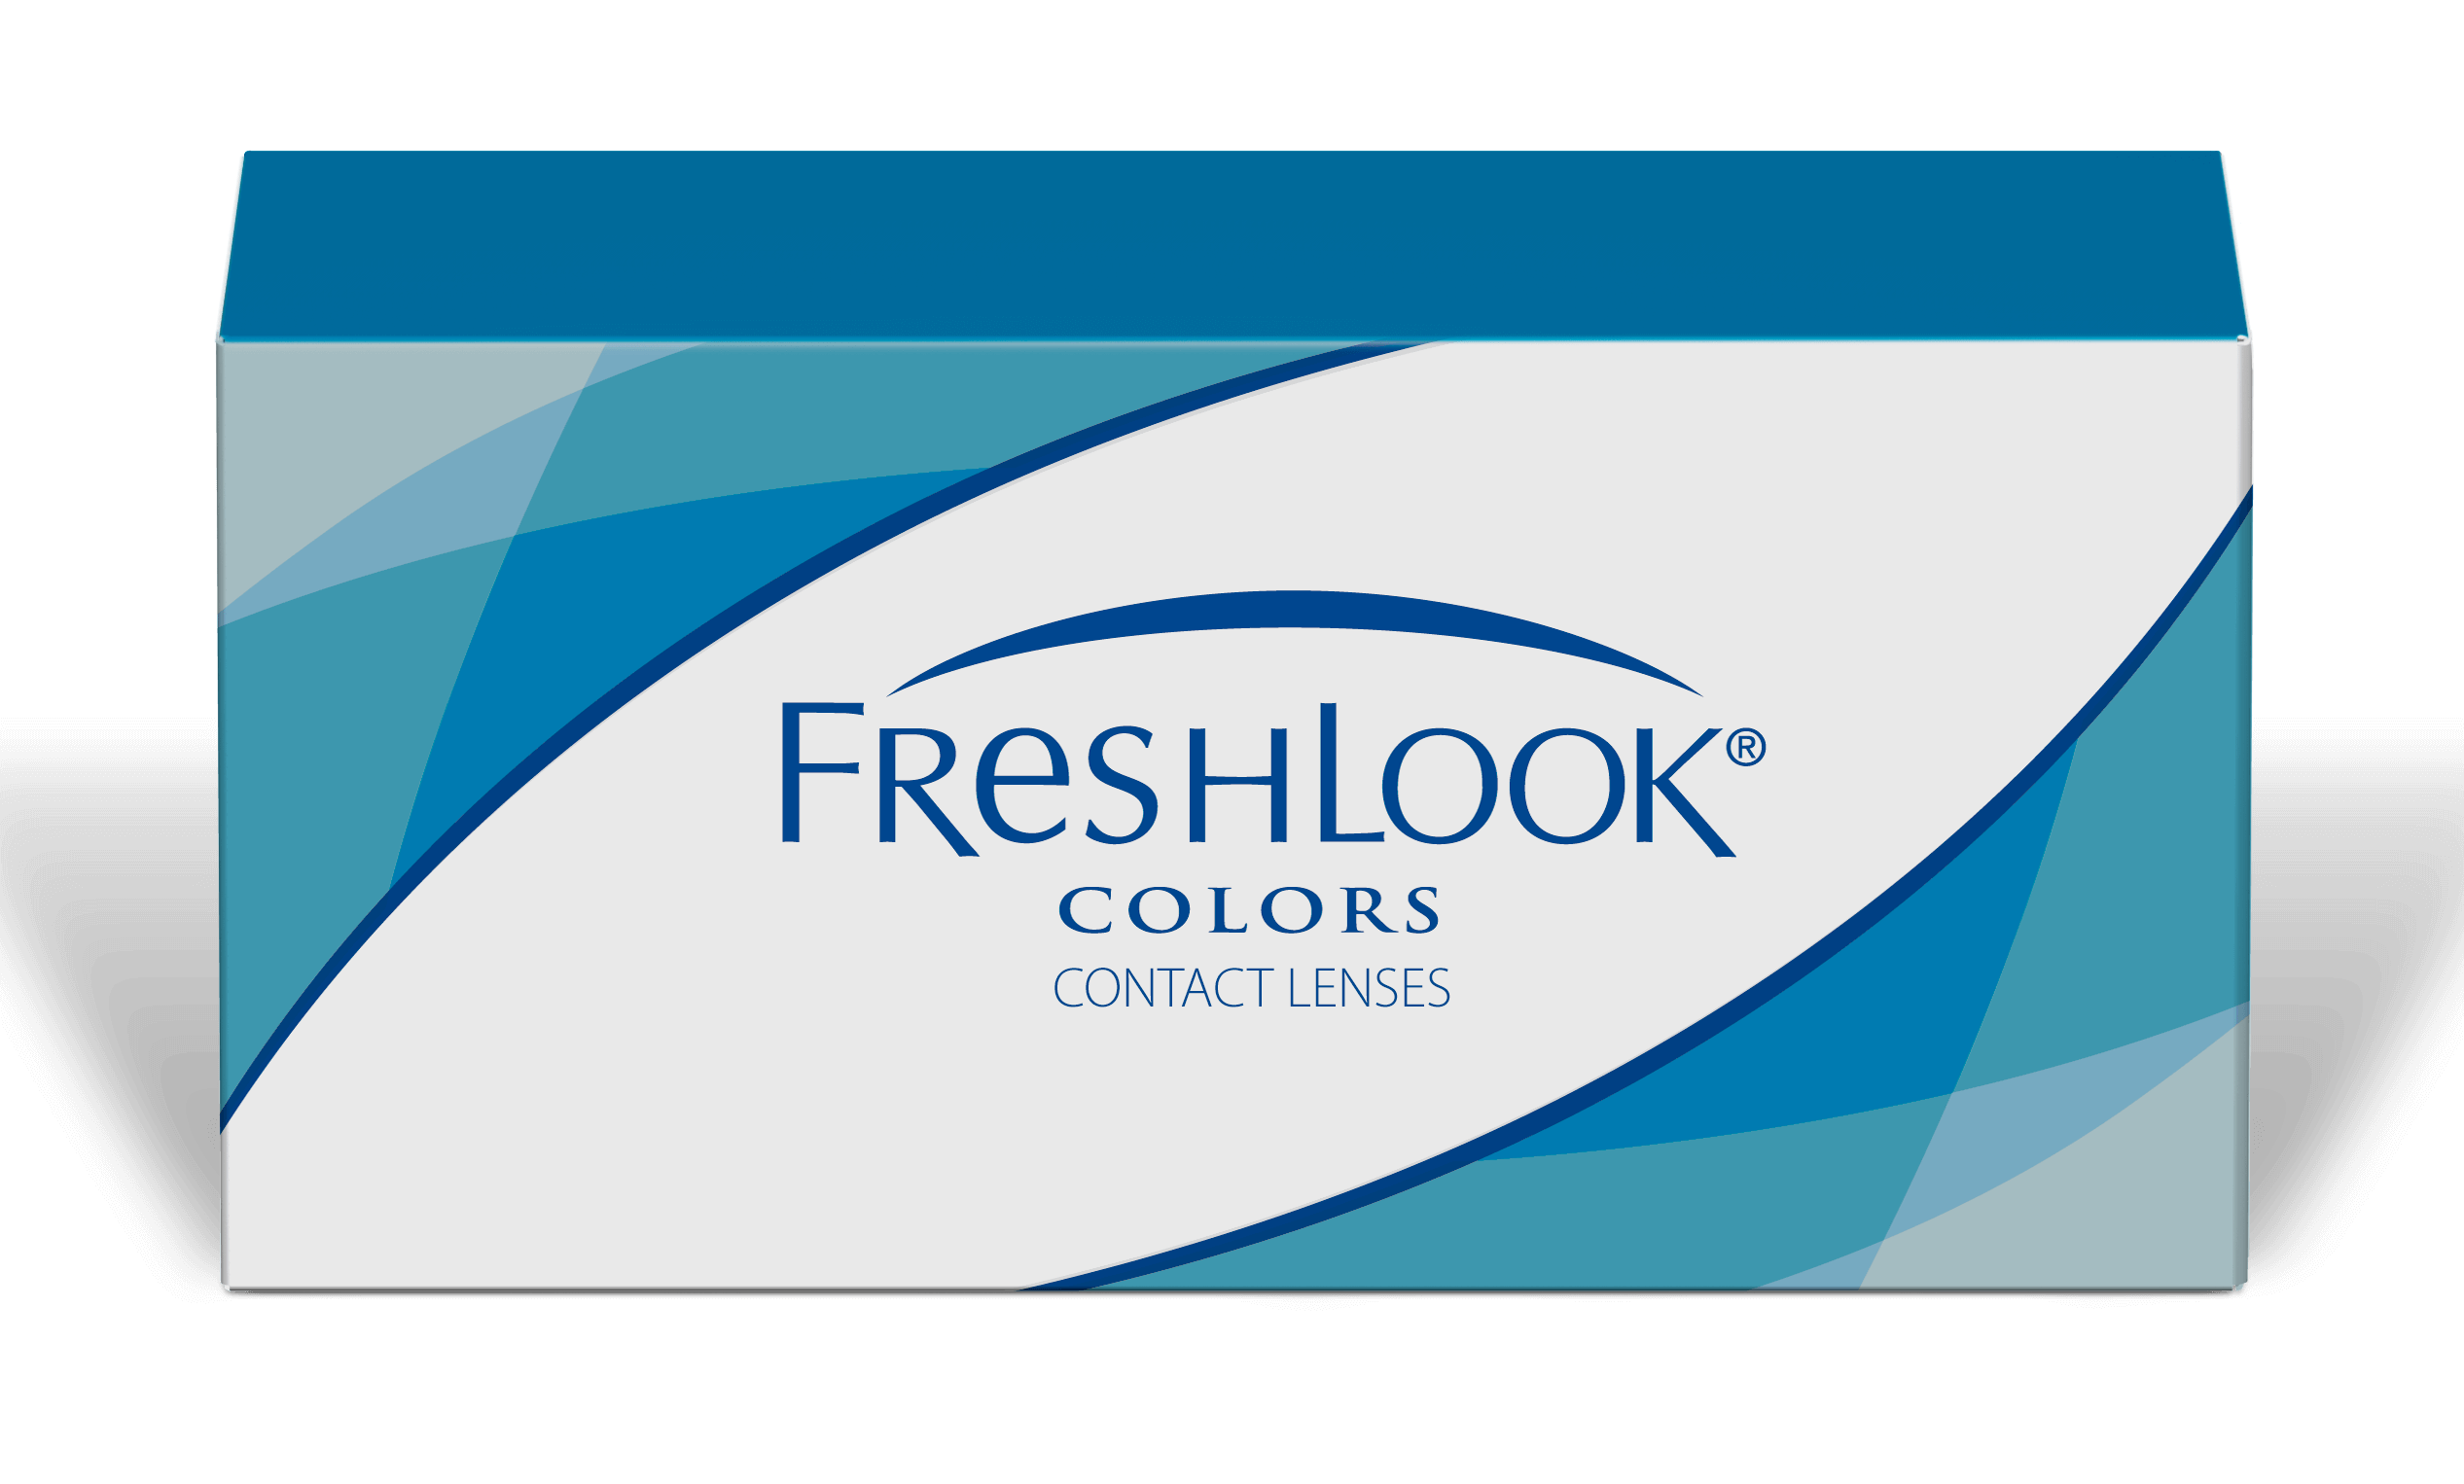 freshlook-colors